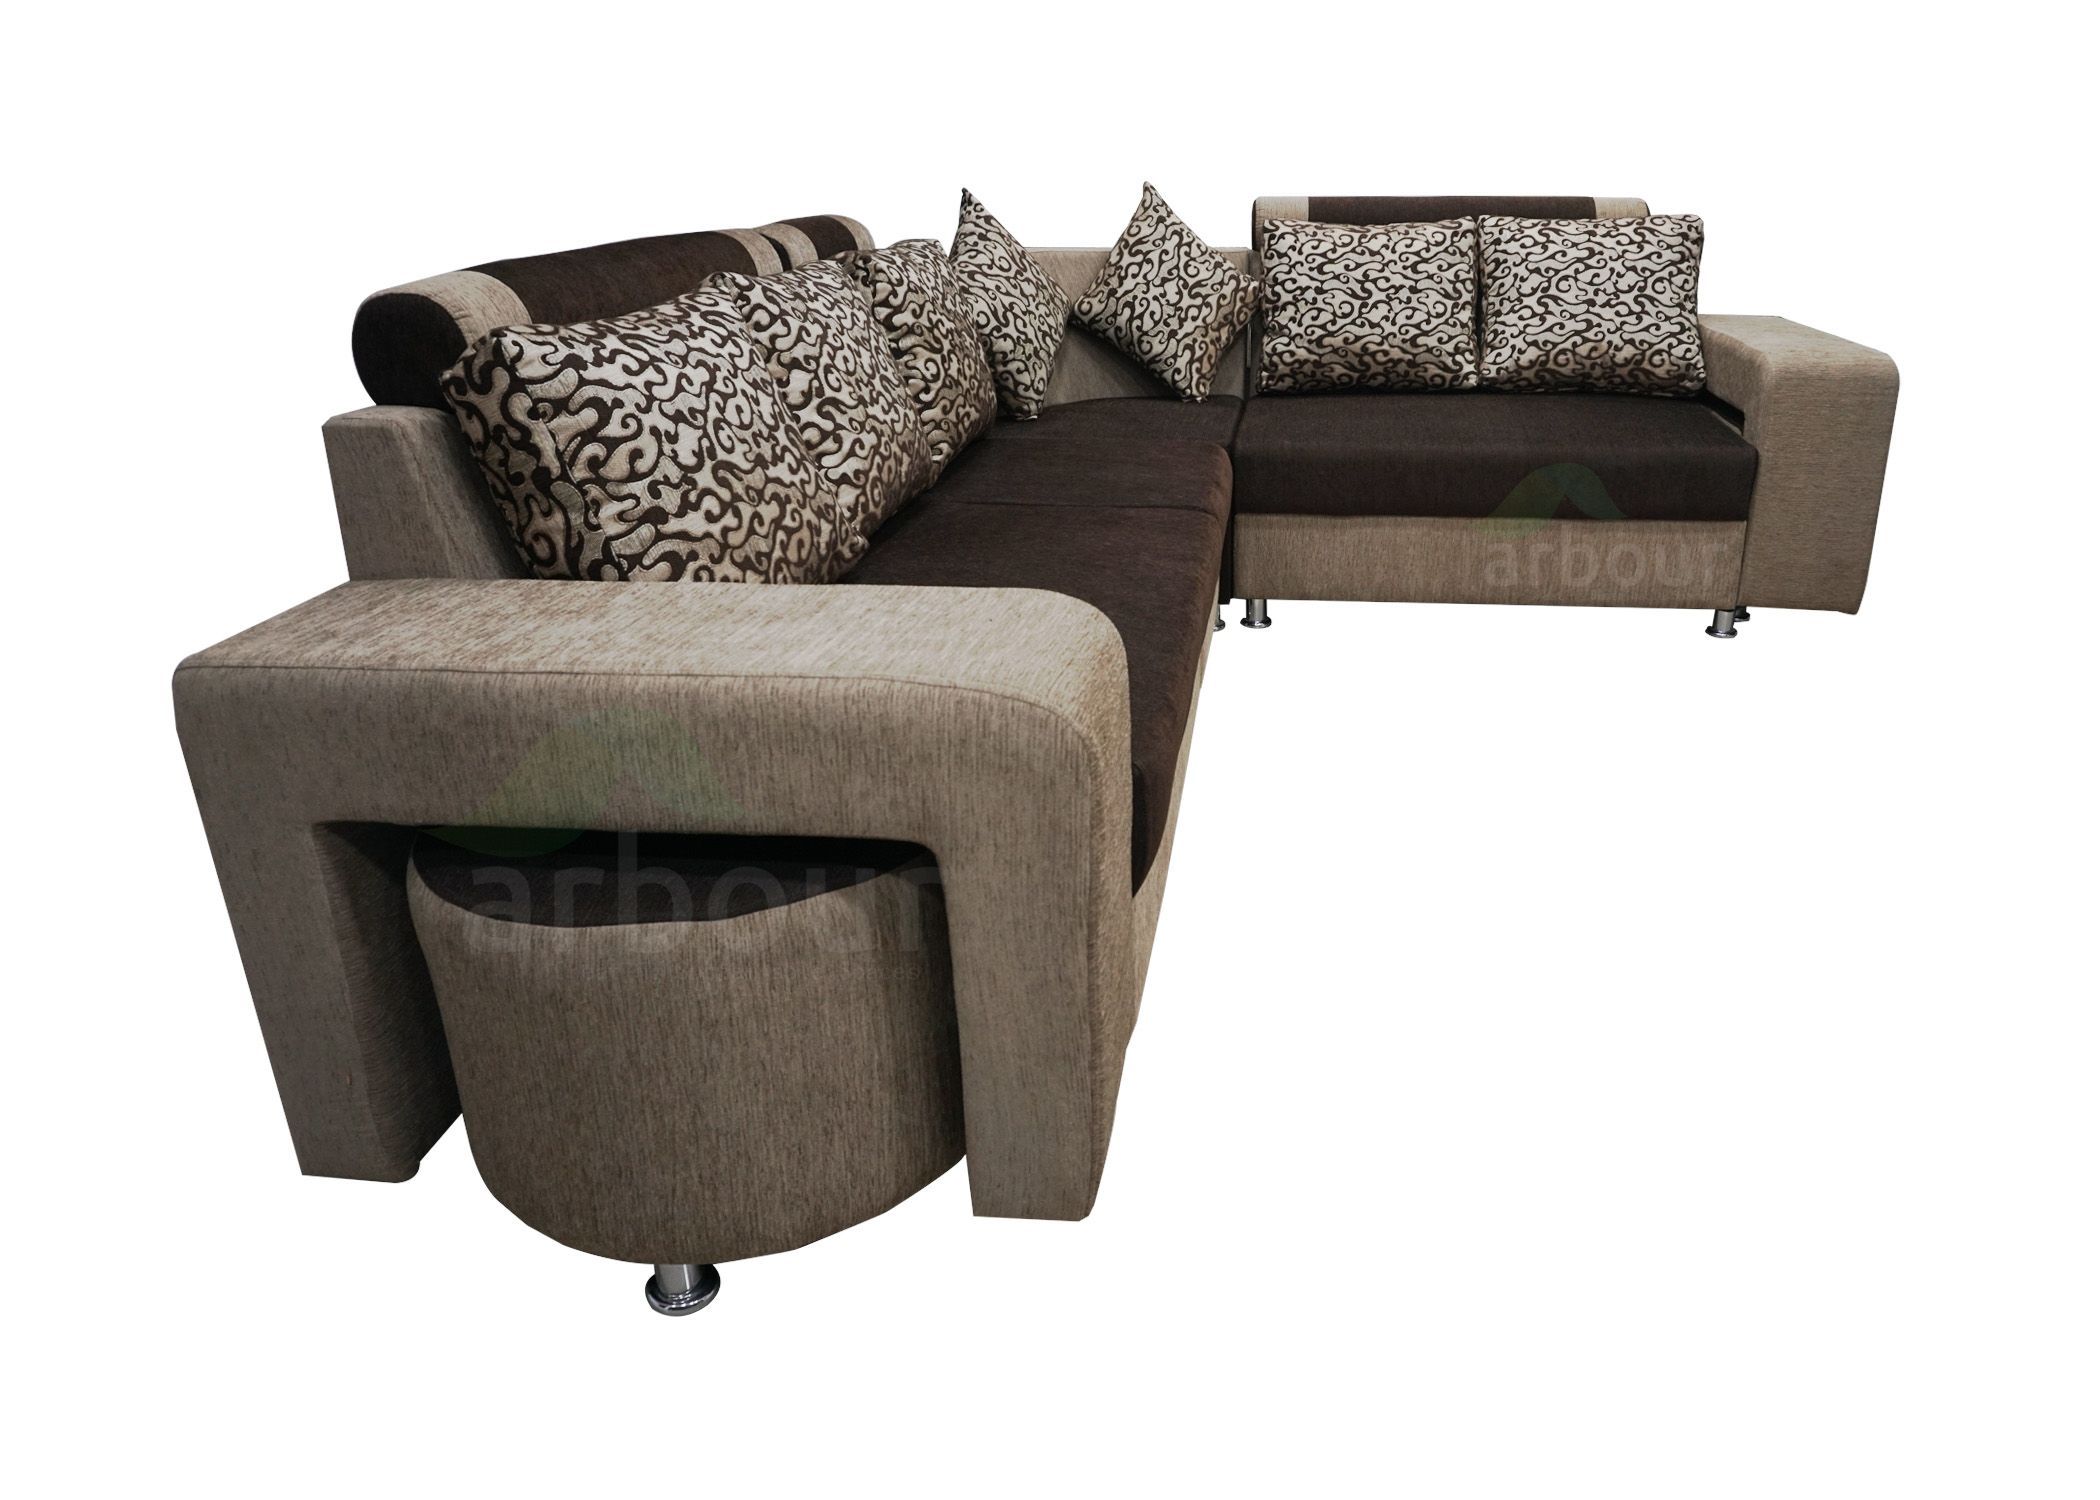 Buy diwan cot and diwan furniture at very low price with top quality